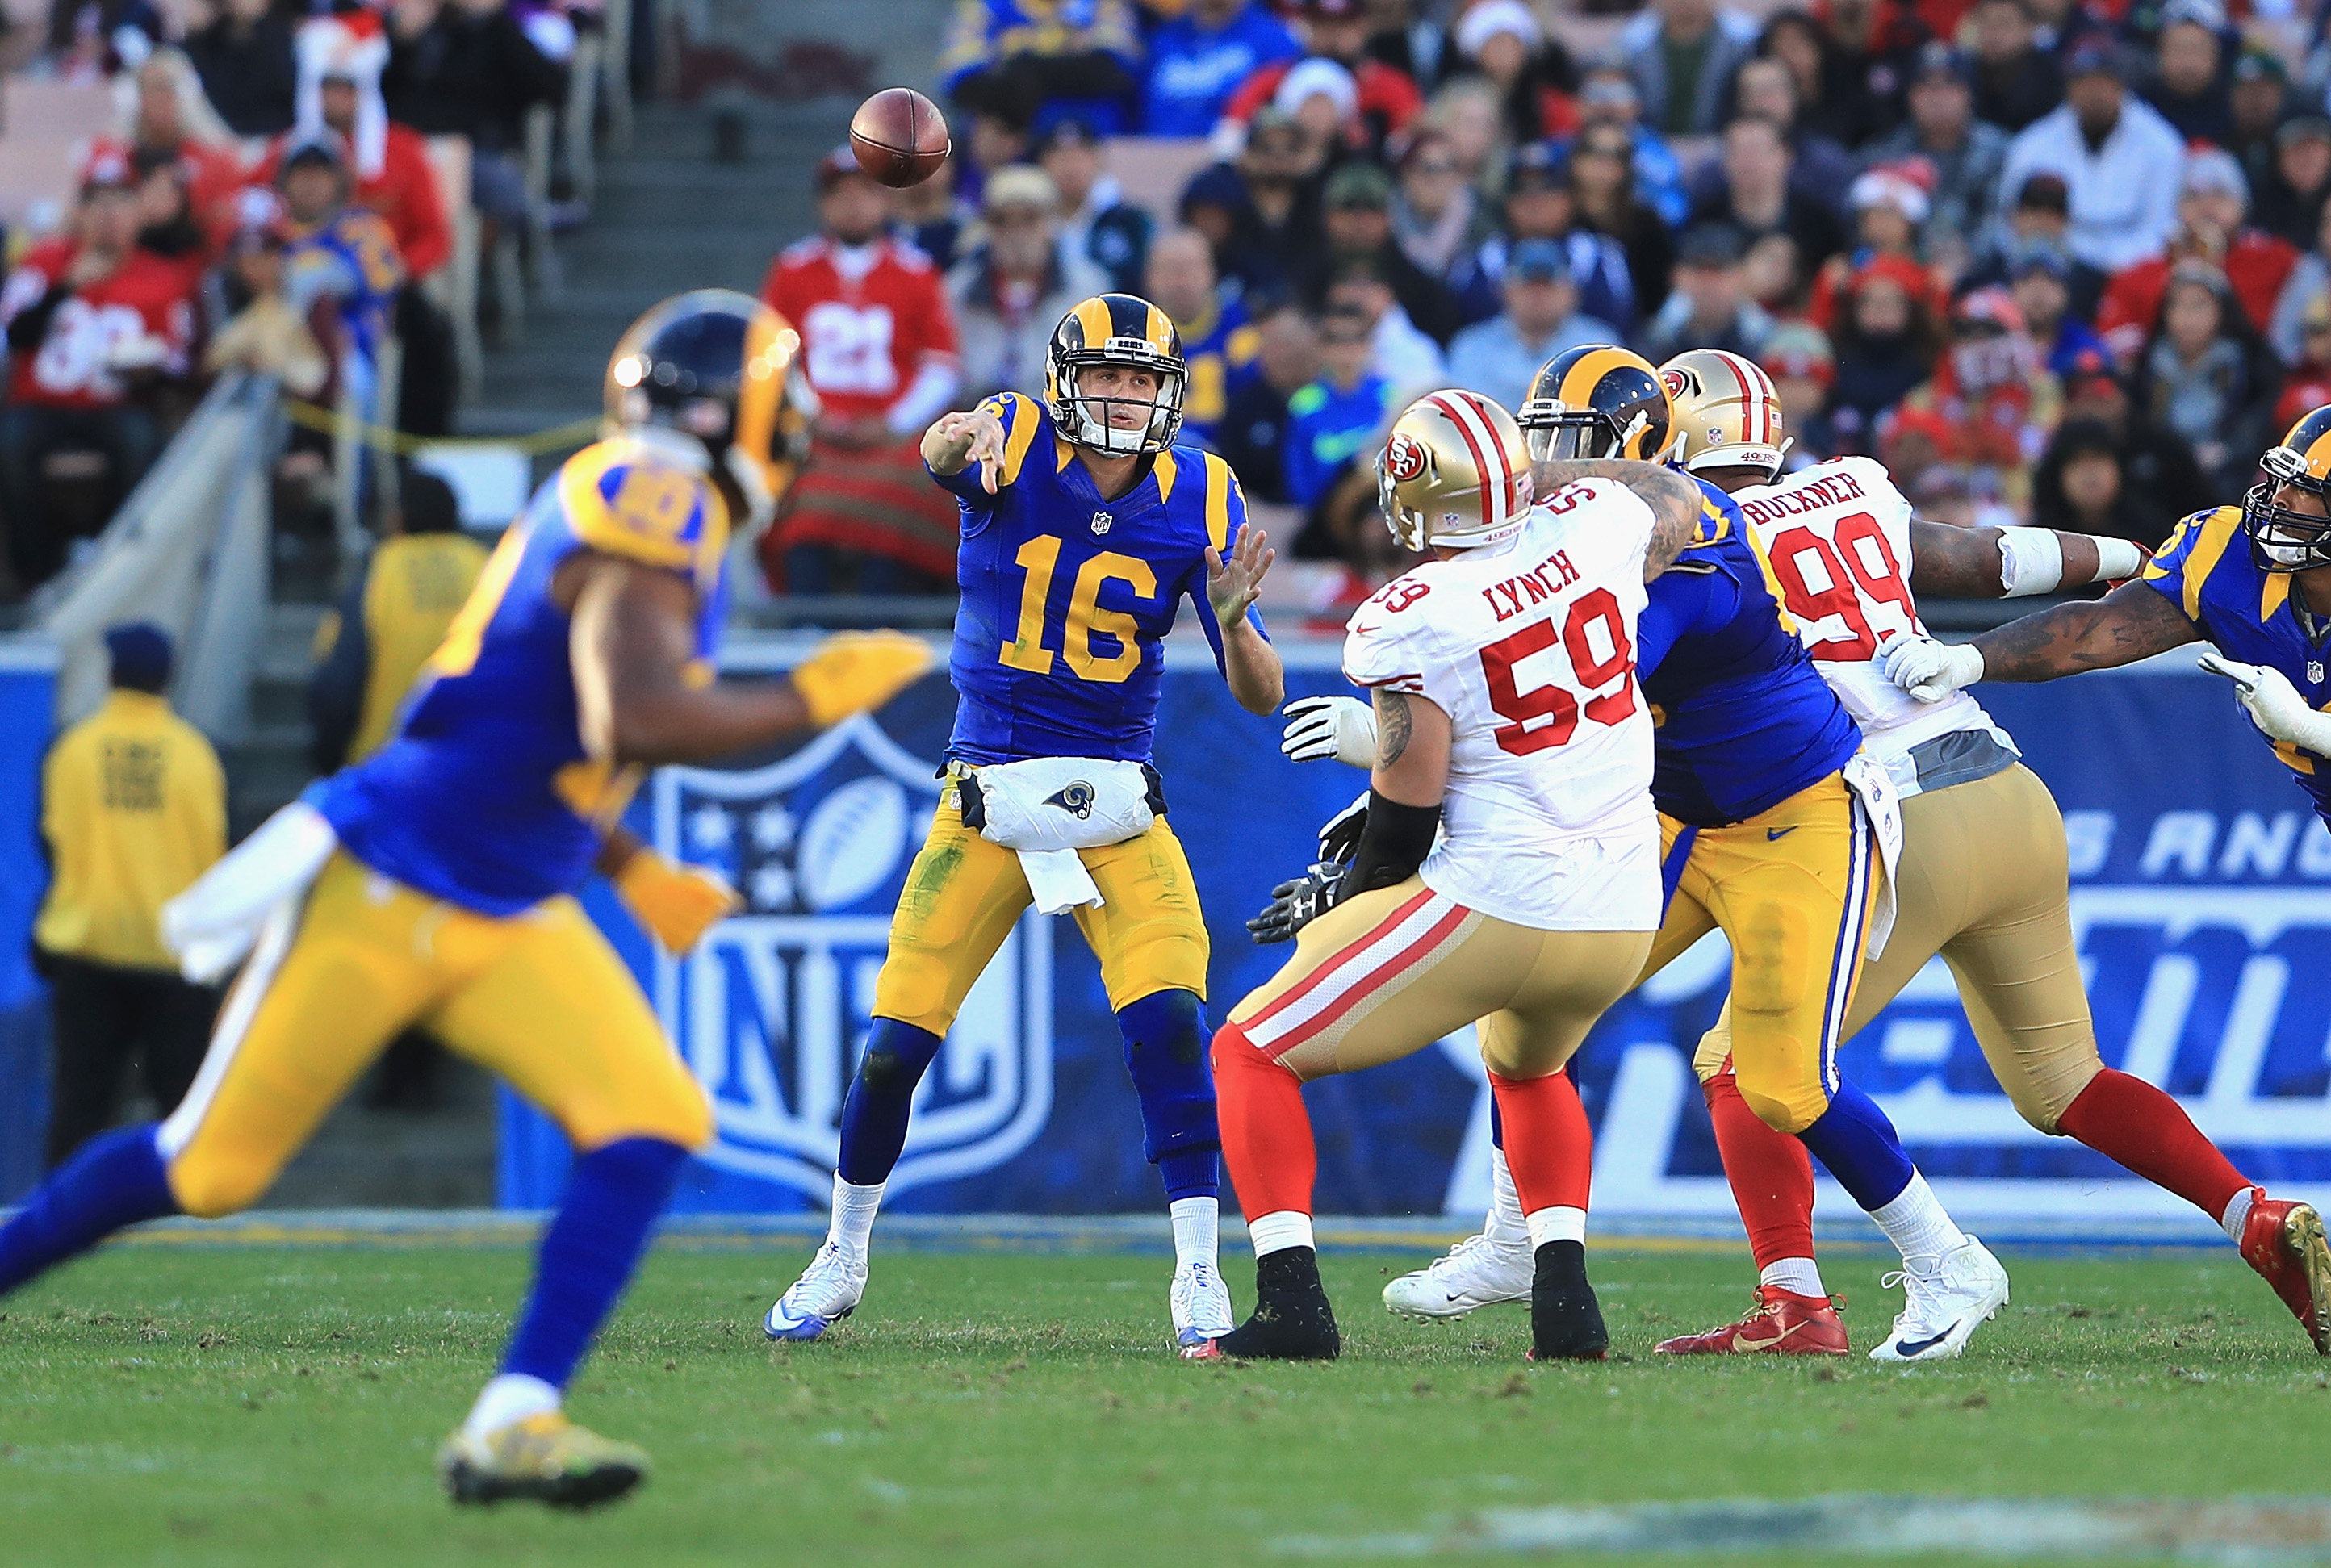 Los Angeles Rams QB Jared Goff throws a pass to WR Pharoh Cooper against the San Francisco 49ers